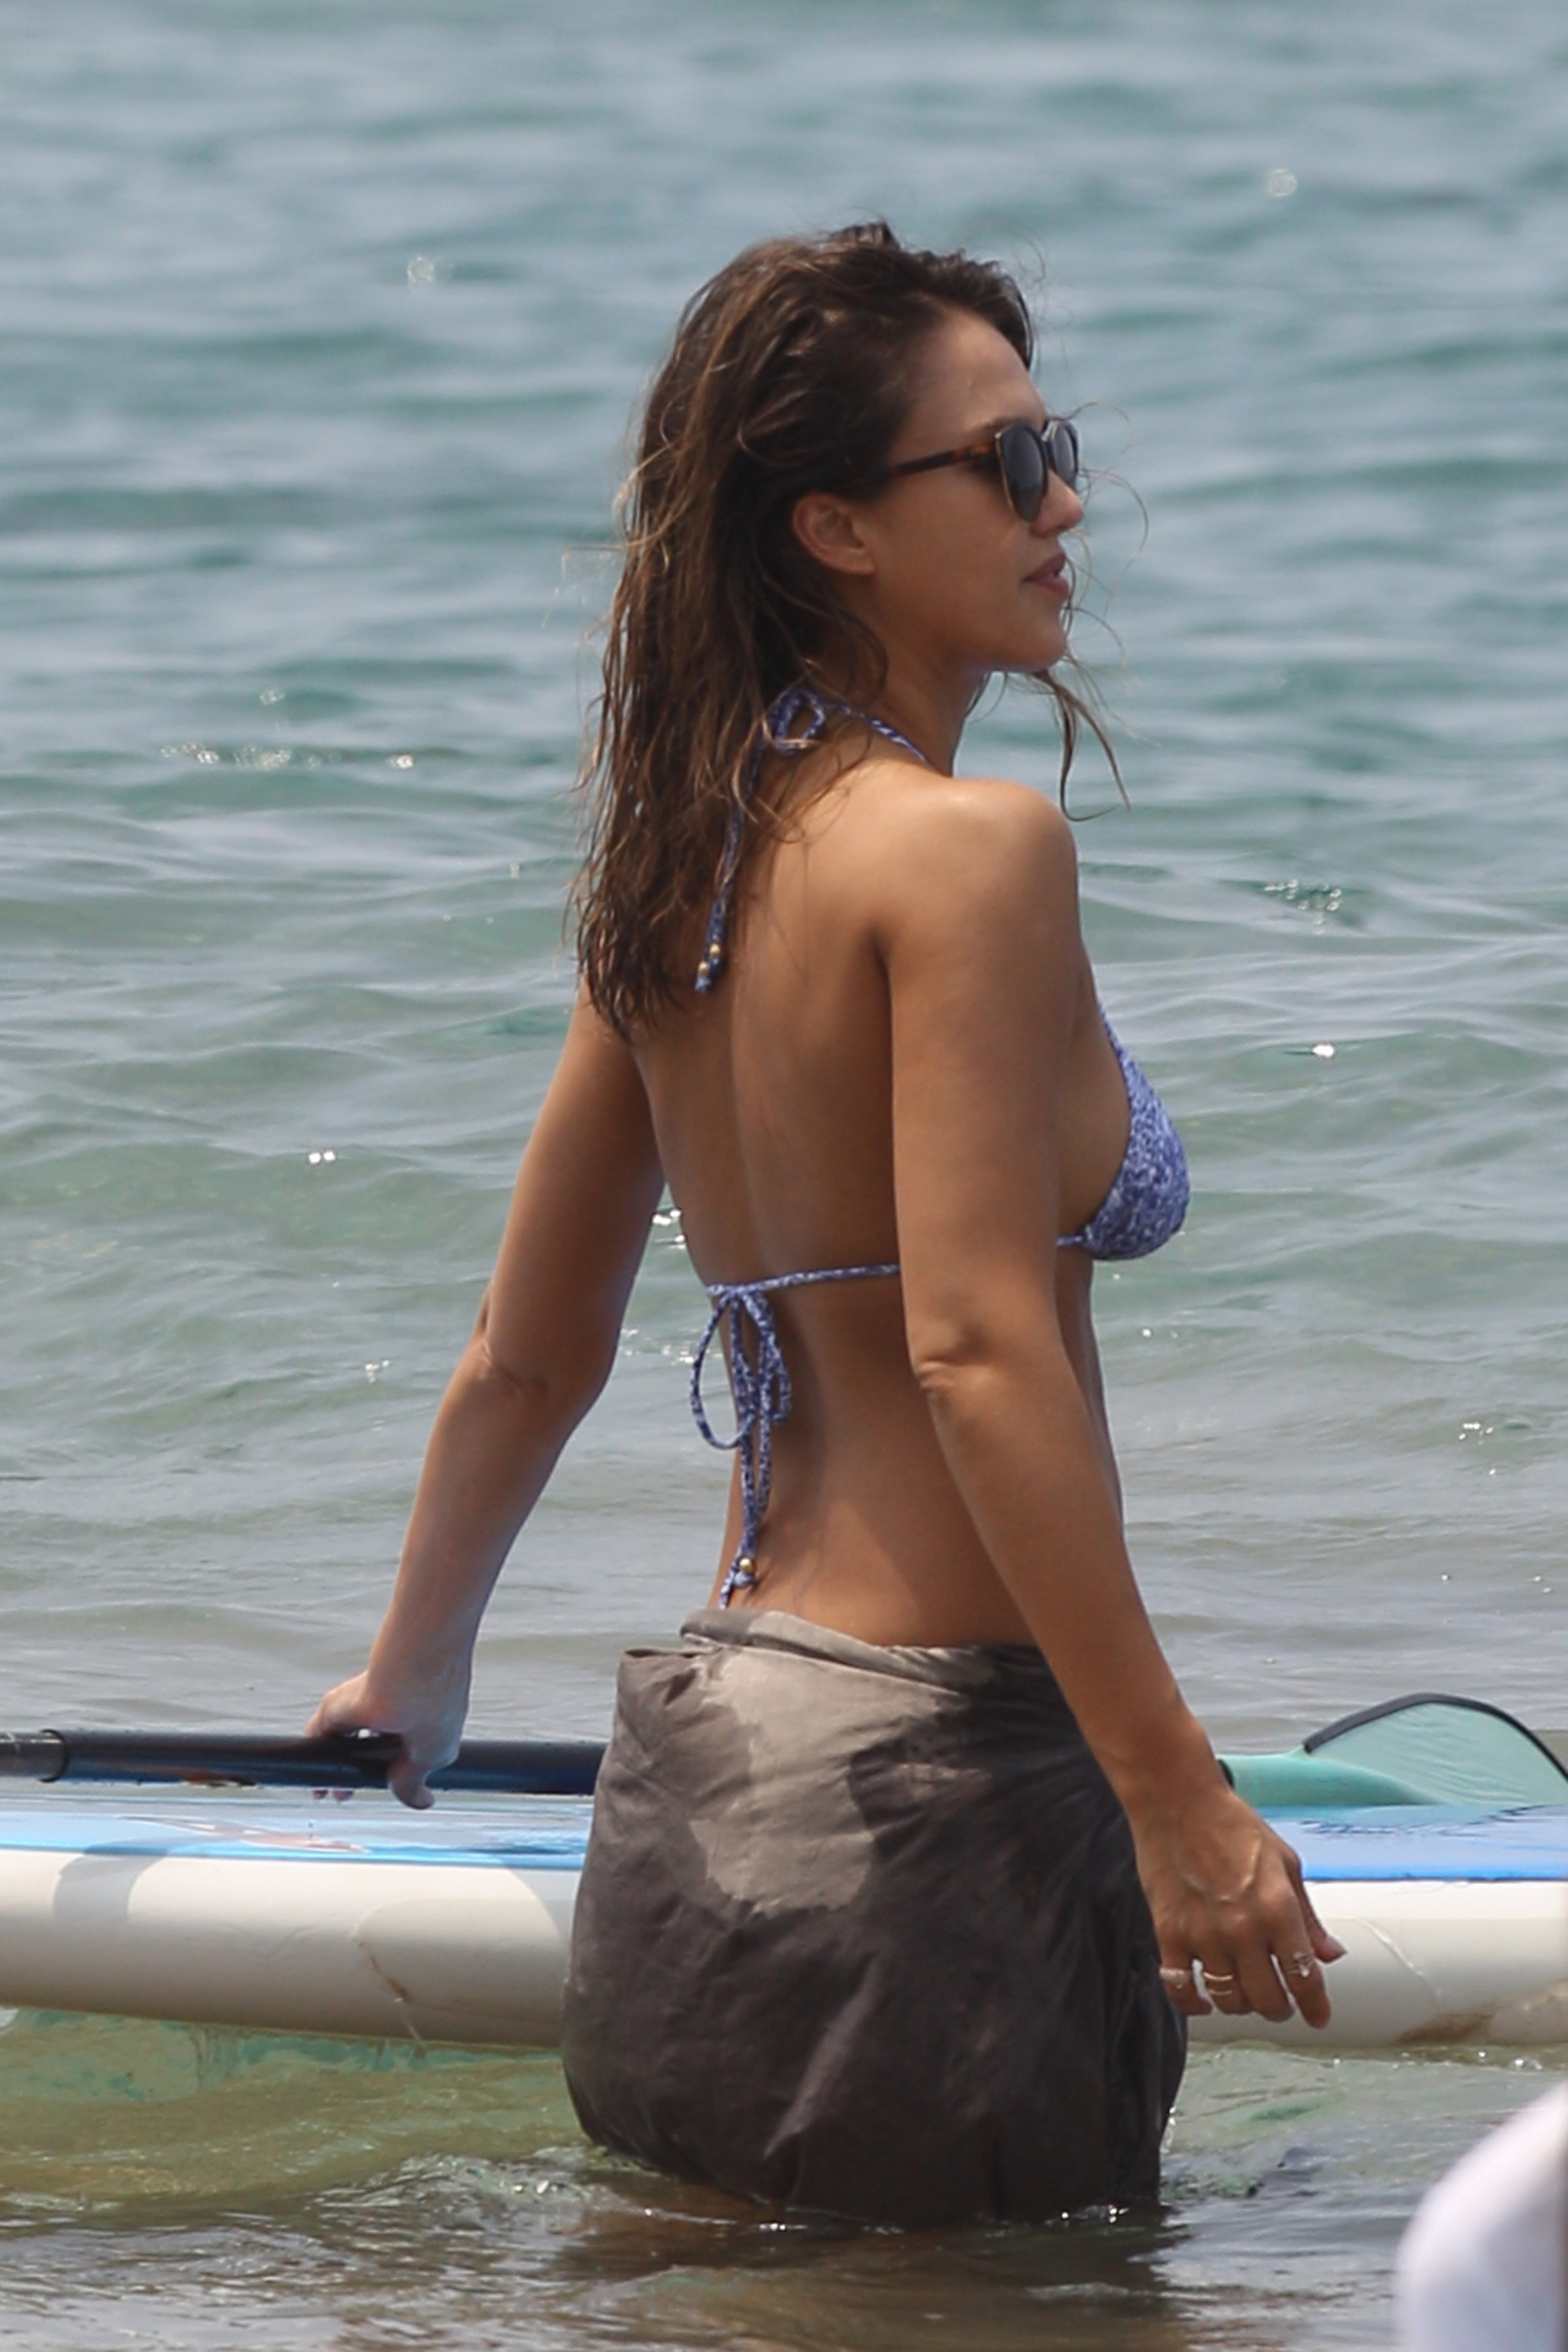 Jessica alba bikini photo gallery, nude chick bent over with pussy showing